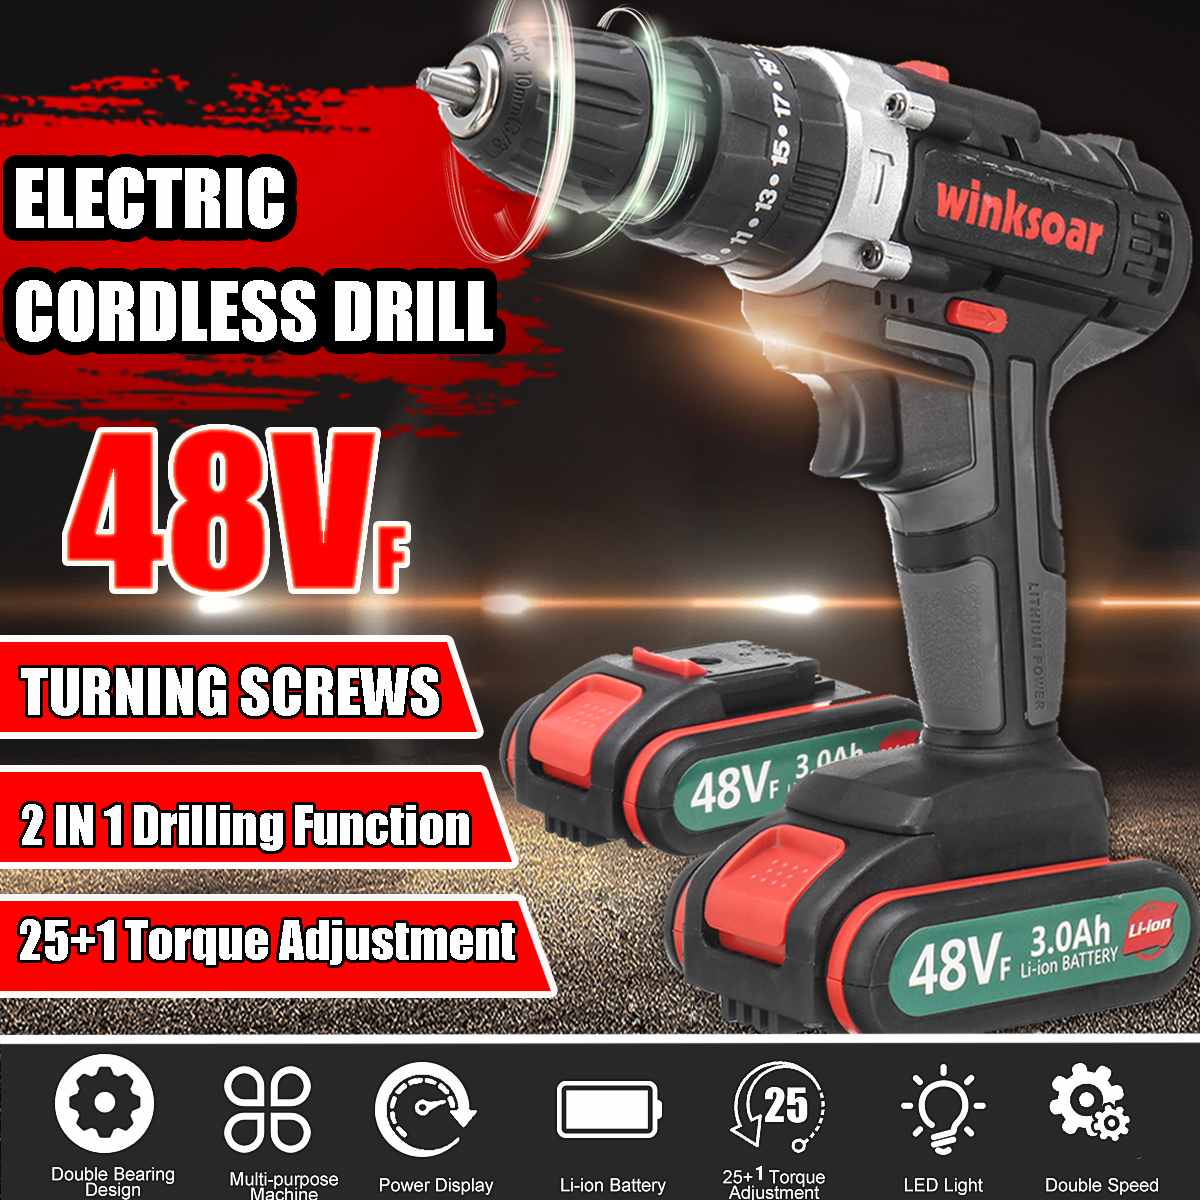 48V Cordless Electric Screwdriver Impact Drill 25+1 Torque Adjustment Rechargeable LI-ION Batteryx2 Electric Drill 2-Speed Tools